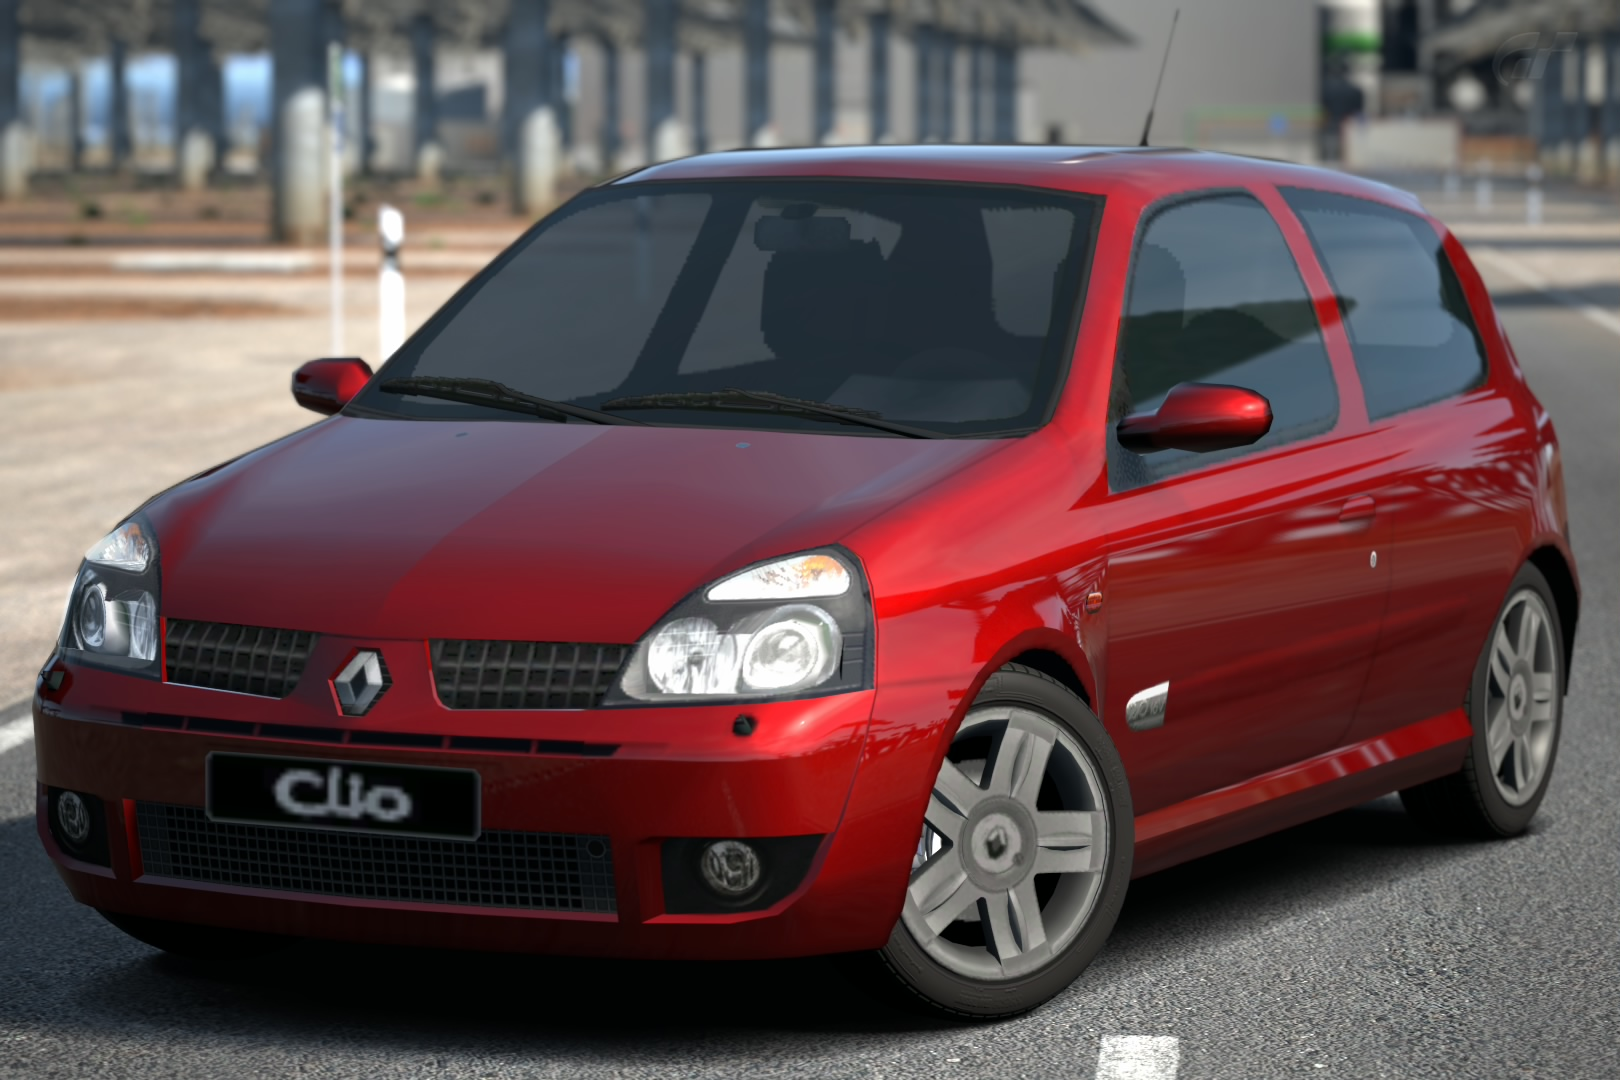 clio renault sport 2 0 16v 39 02 gran turismo wiki fandom powered by wikia. Black Bedroom Furniture Sets. Home Design Ideas